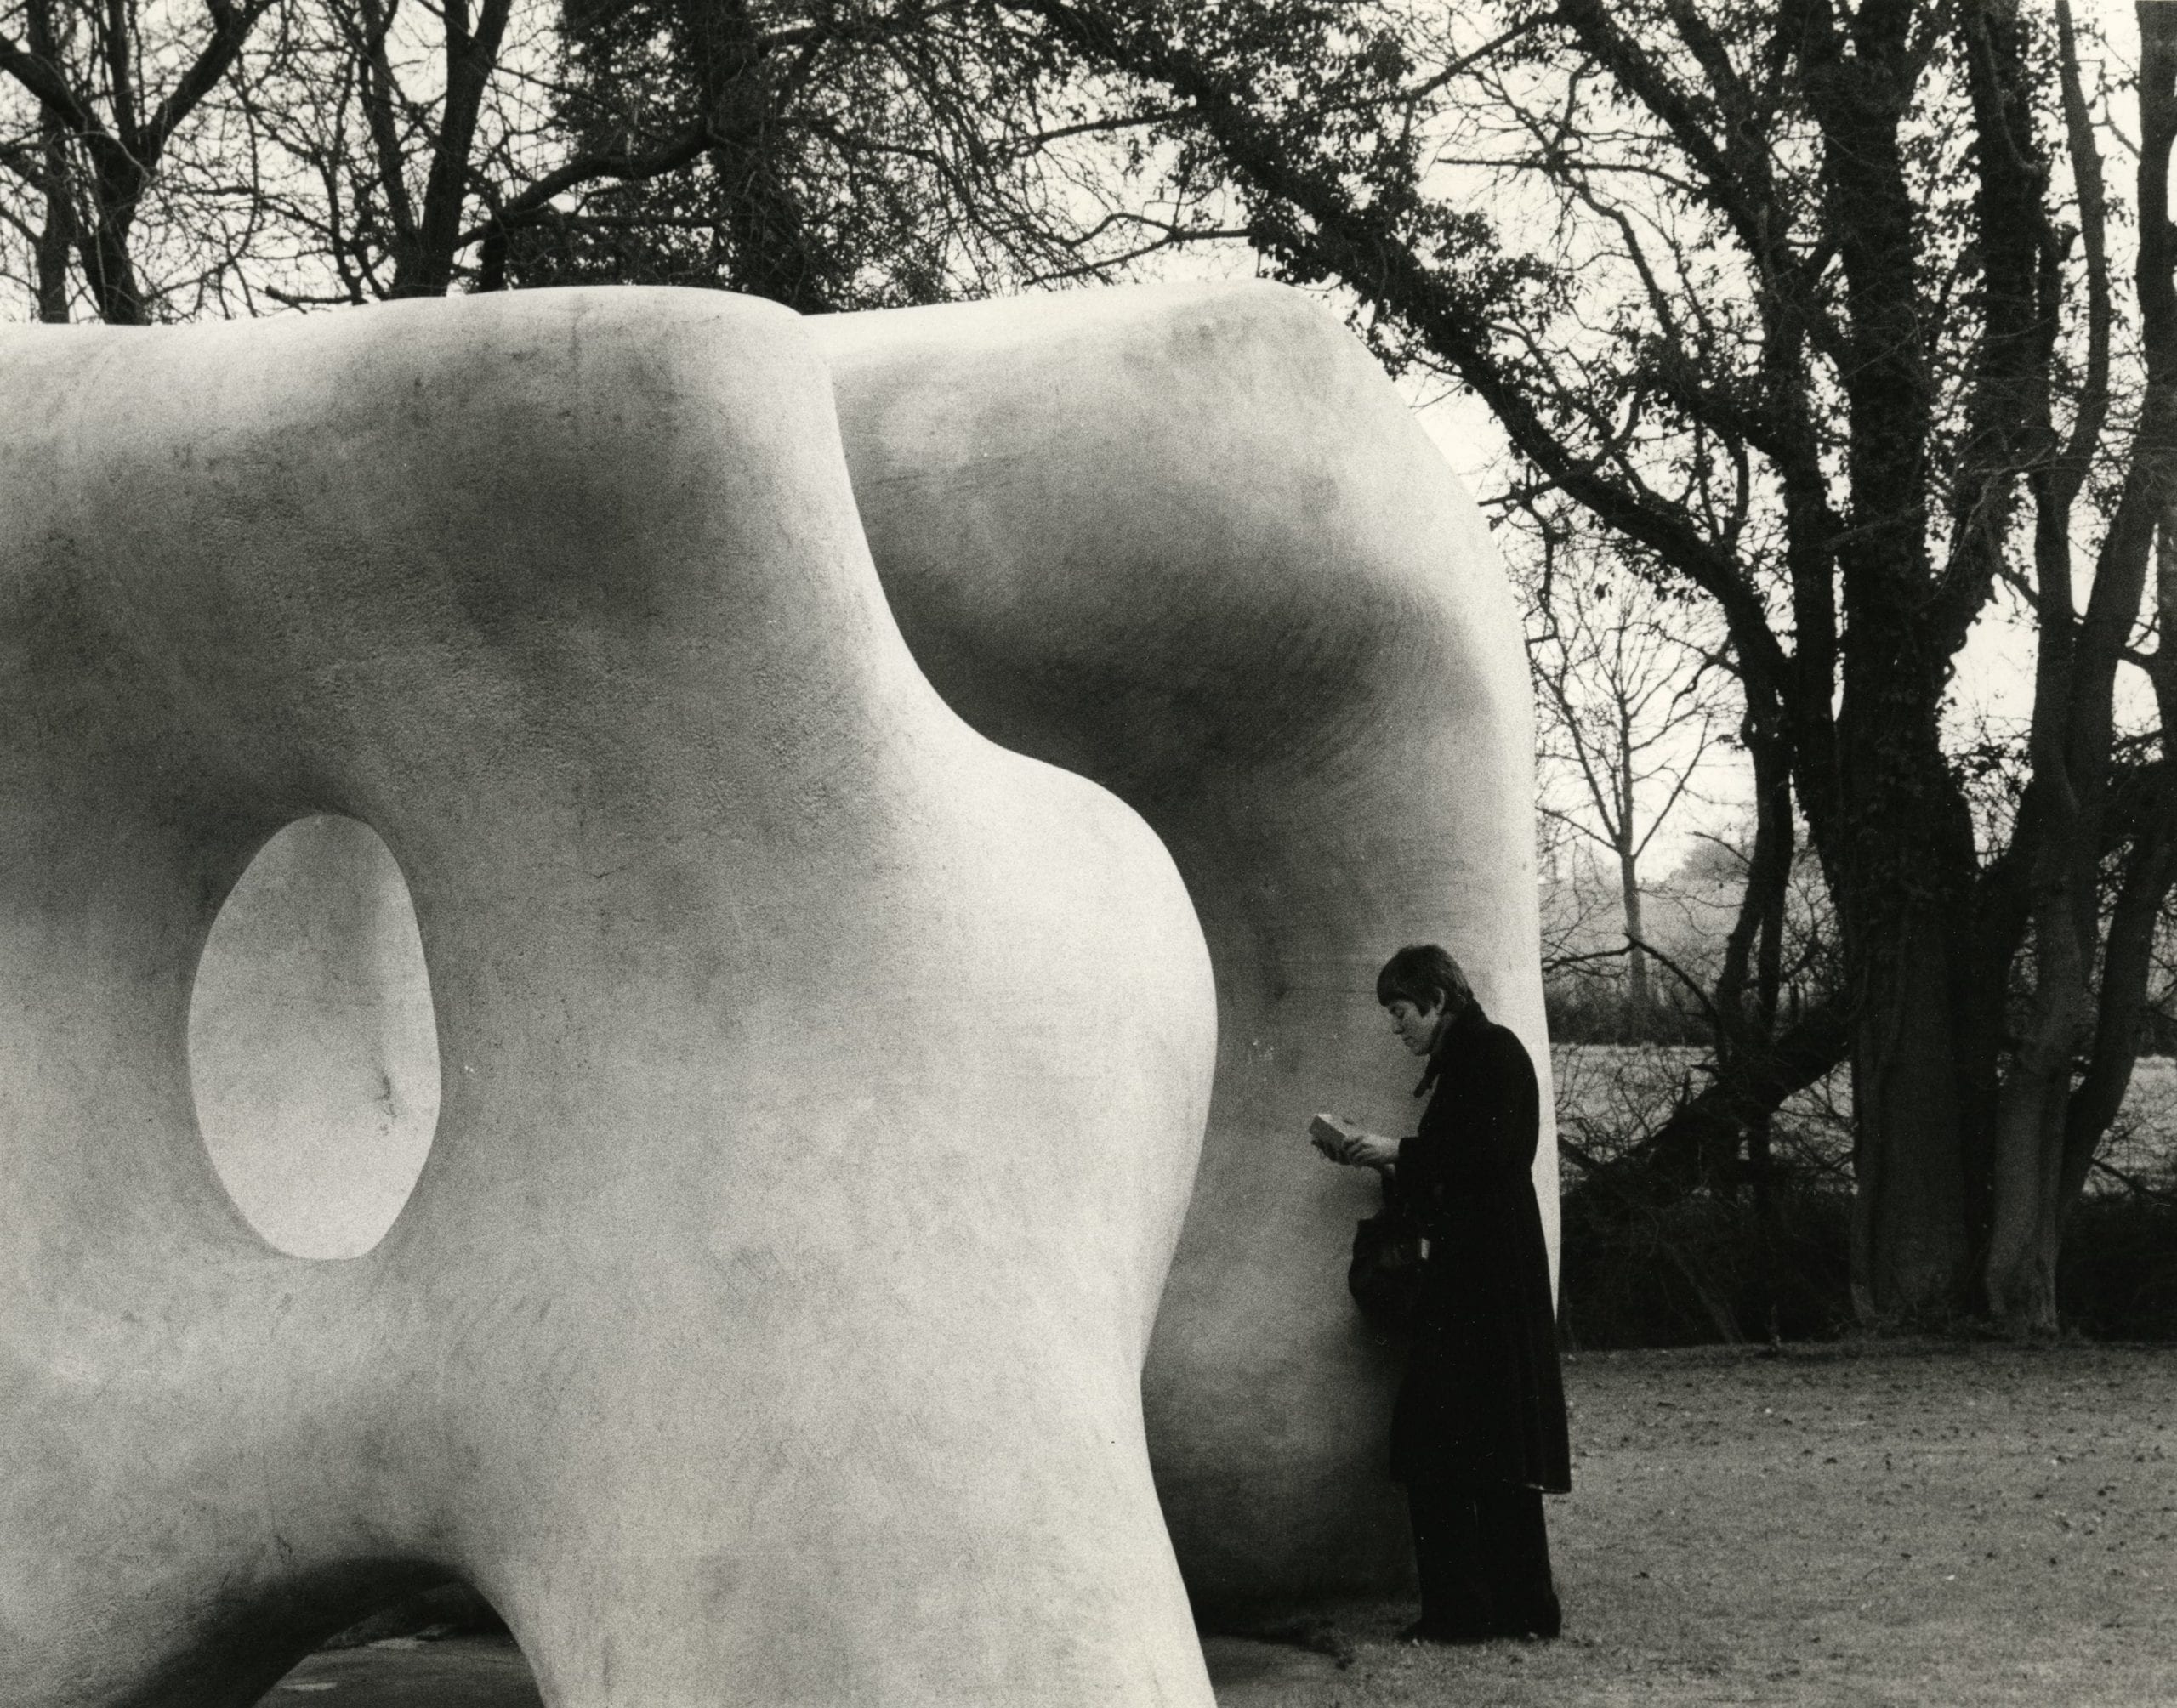 Andre Kertesz, Henry Moore Sculpture with Woman Reading, England, 1980. The Estate of Andre Kertesz 2015, Courtesy James Hyman Gallery, London